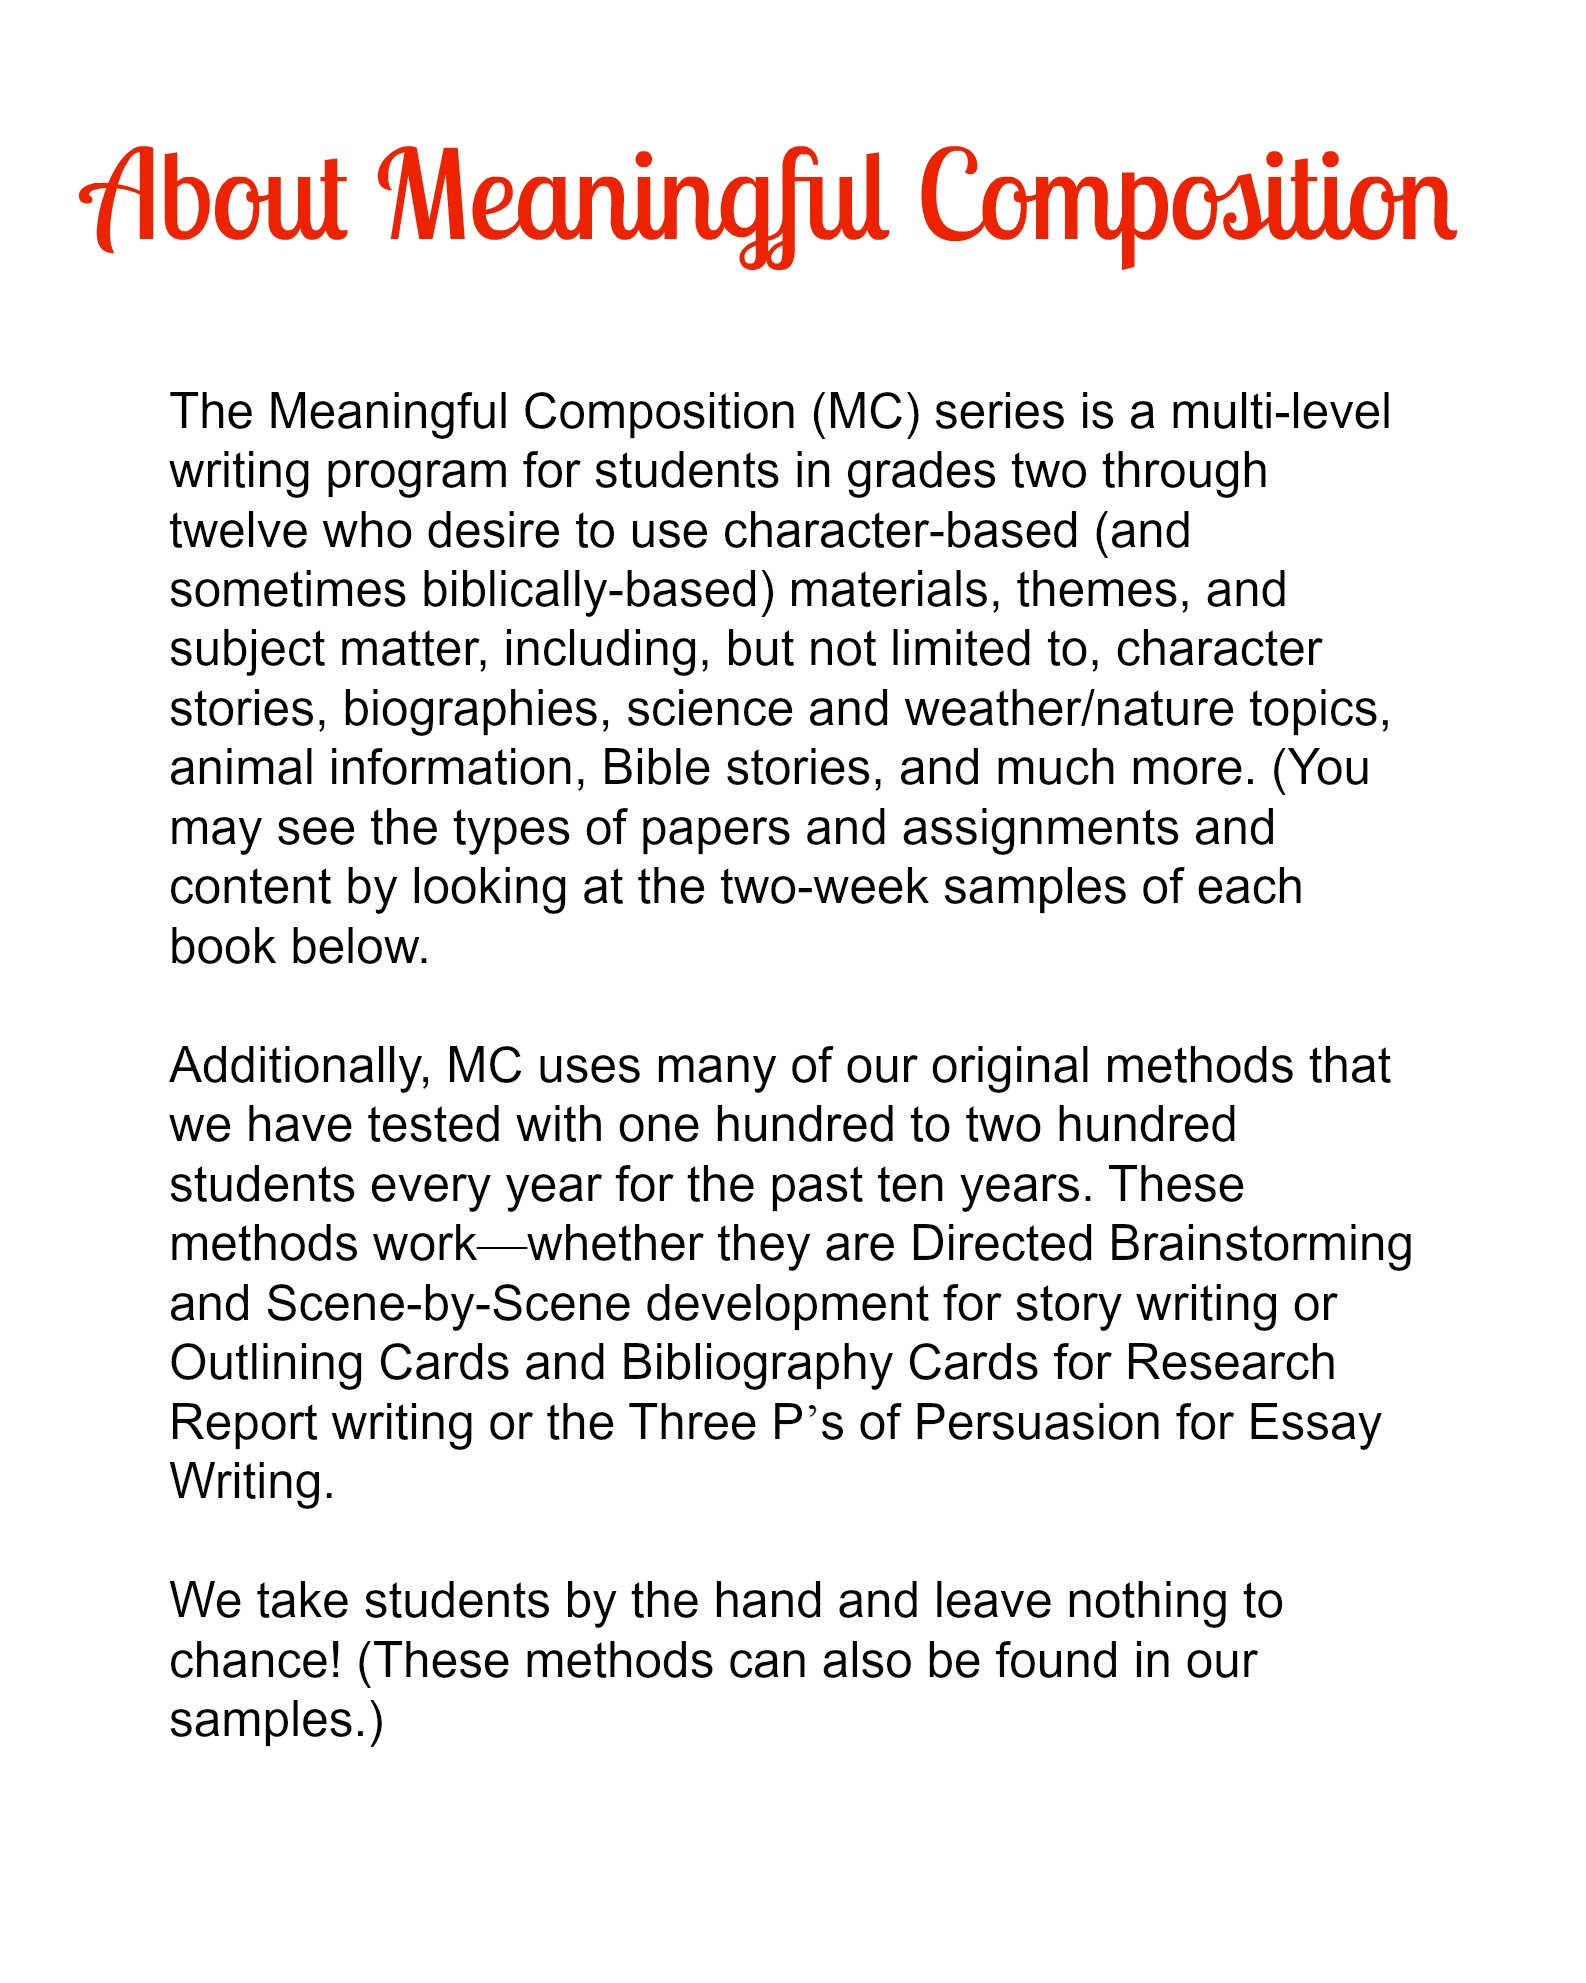 composition 2 research essay Online custom essays, term papers, research papers, reports, reviews and homework assignments professional custom writing service offers high quality and absolutely.